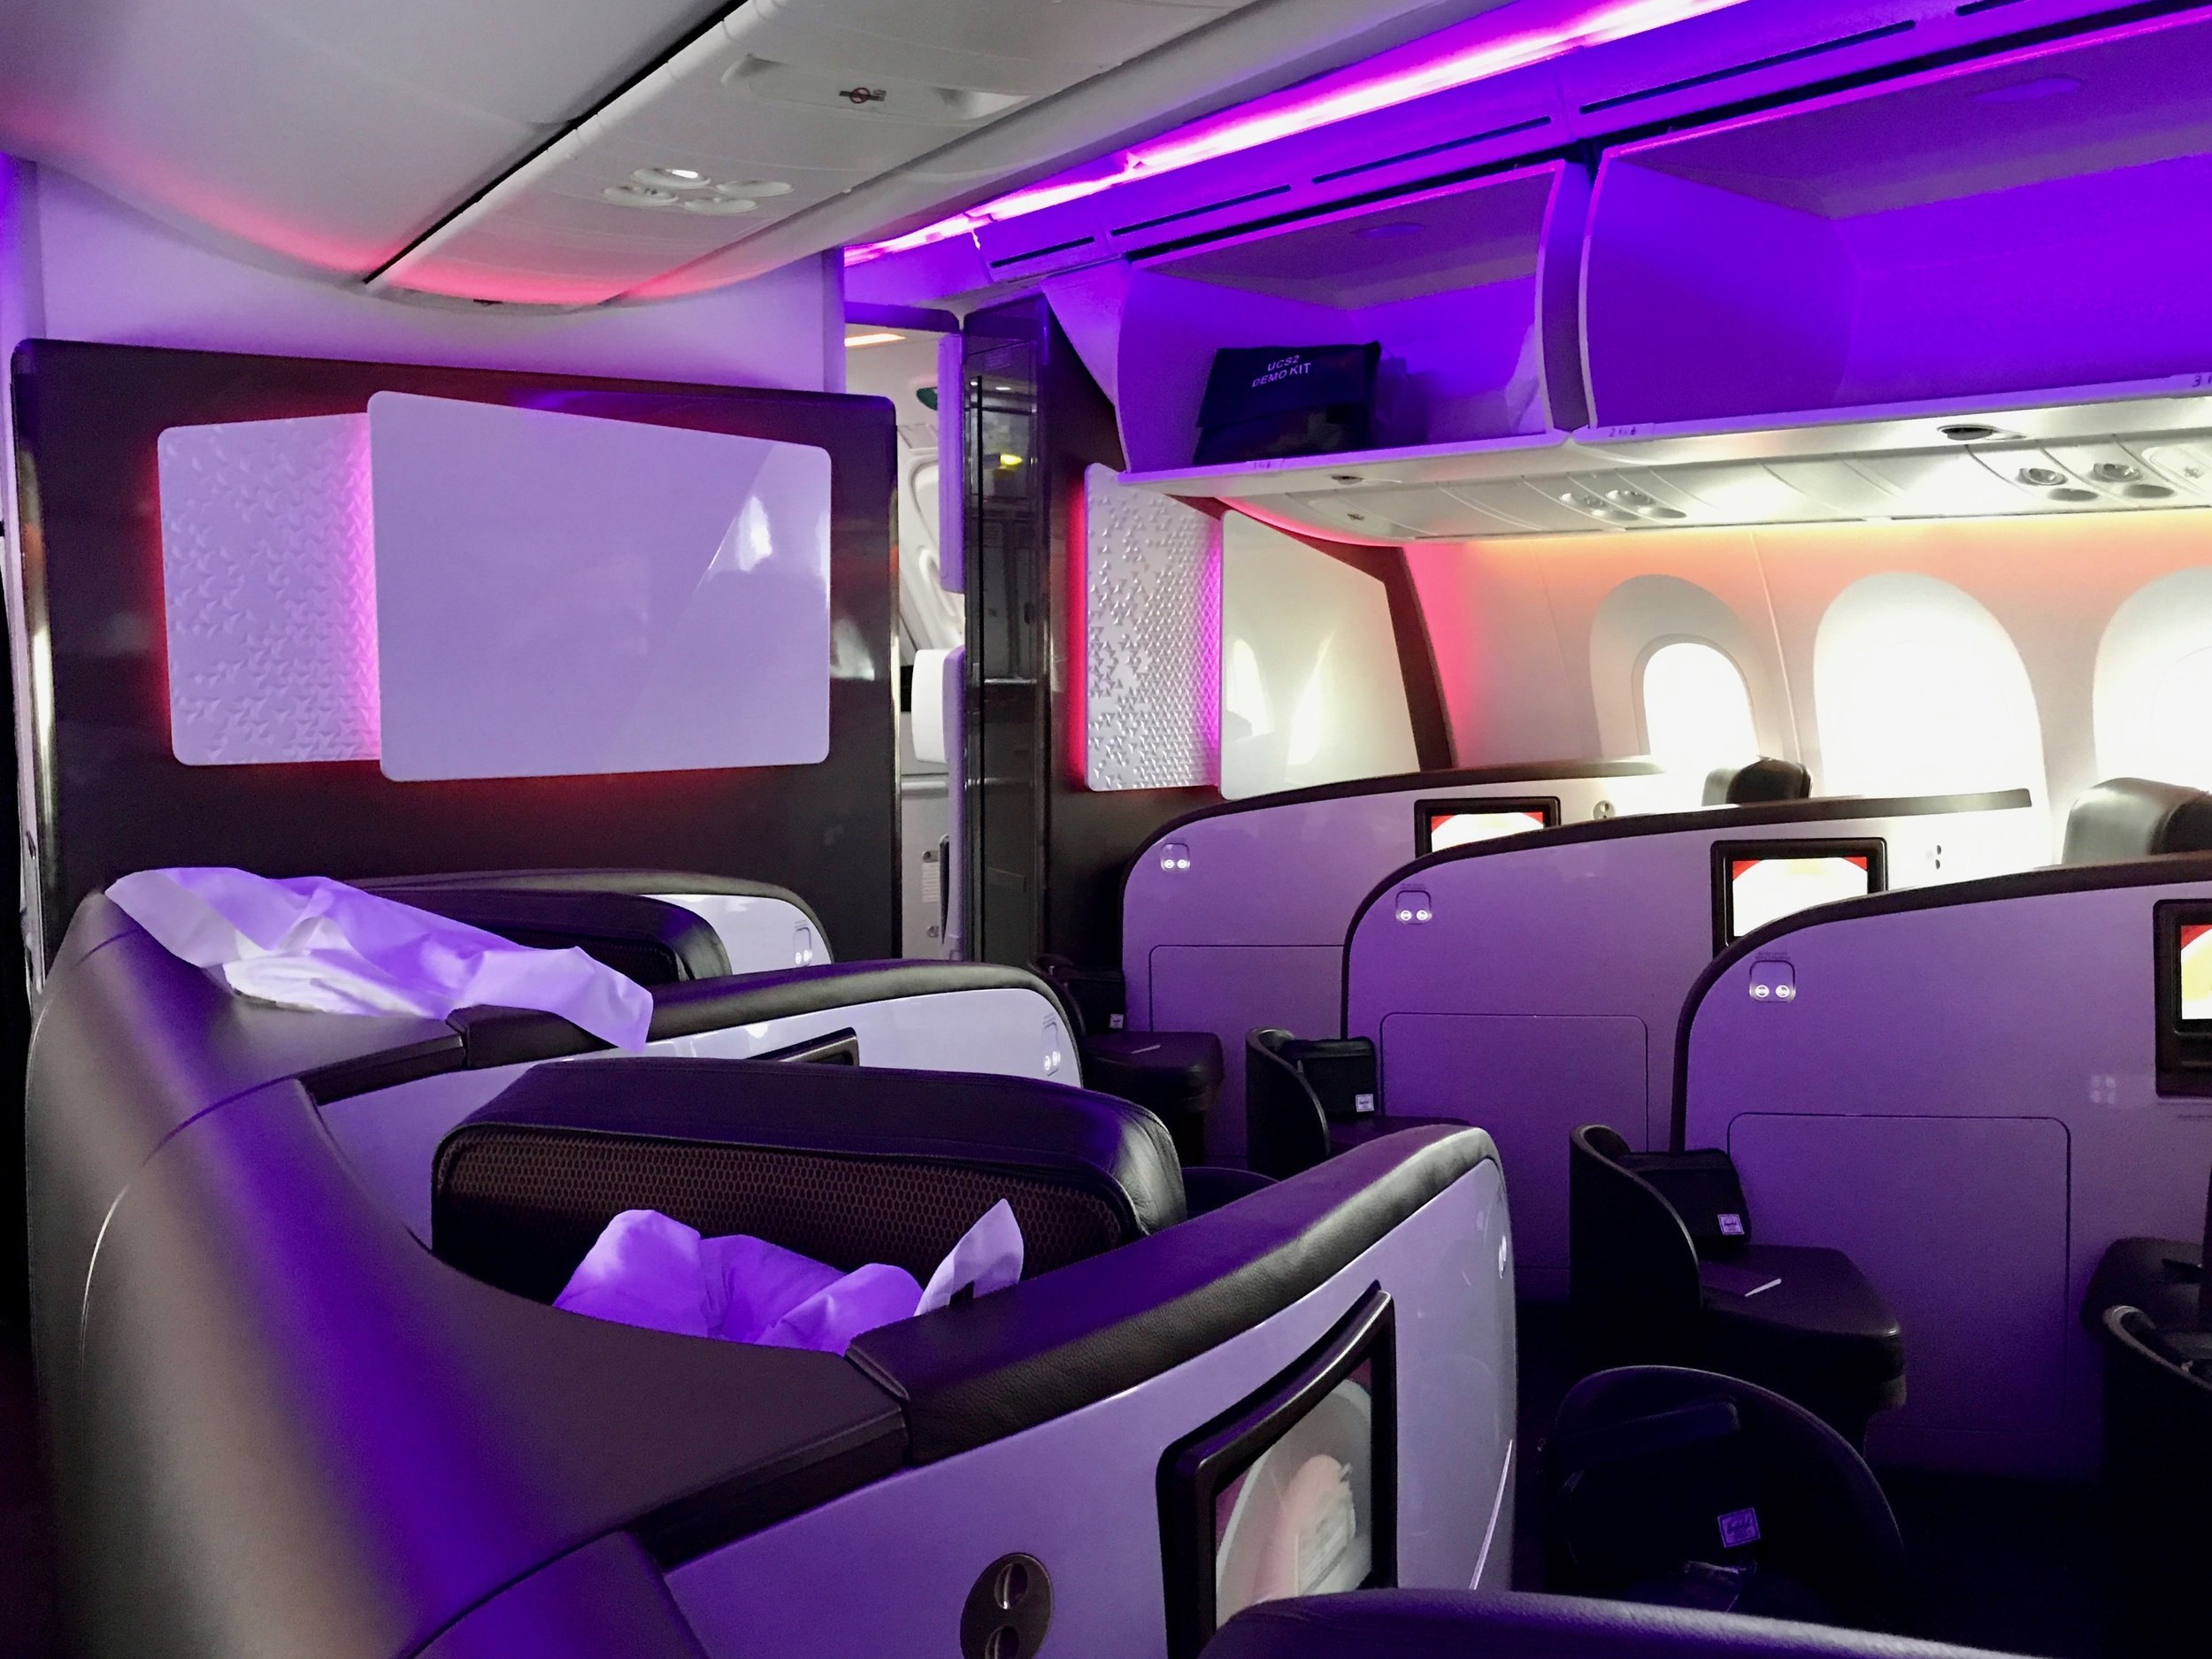 Review: Virgin Atlantic 787 Upper Class London to New York — The